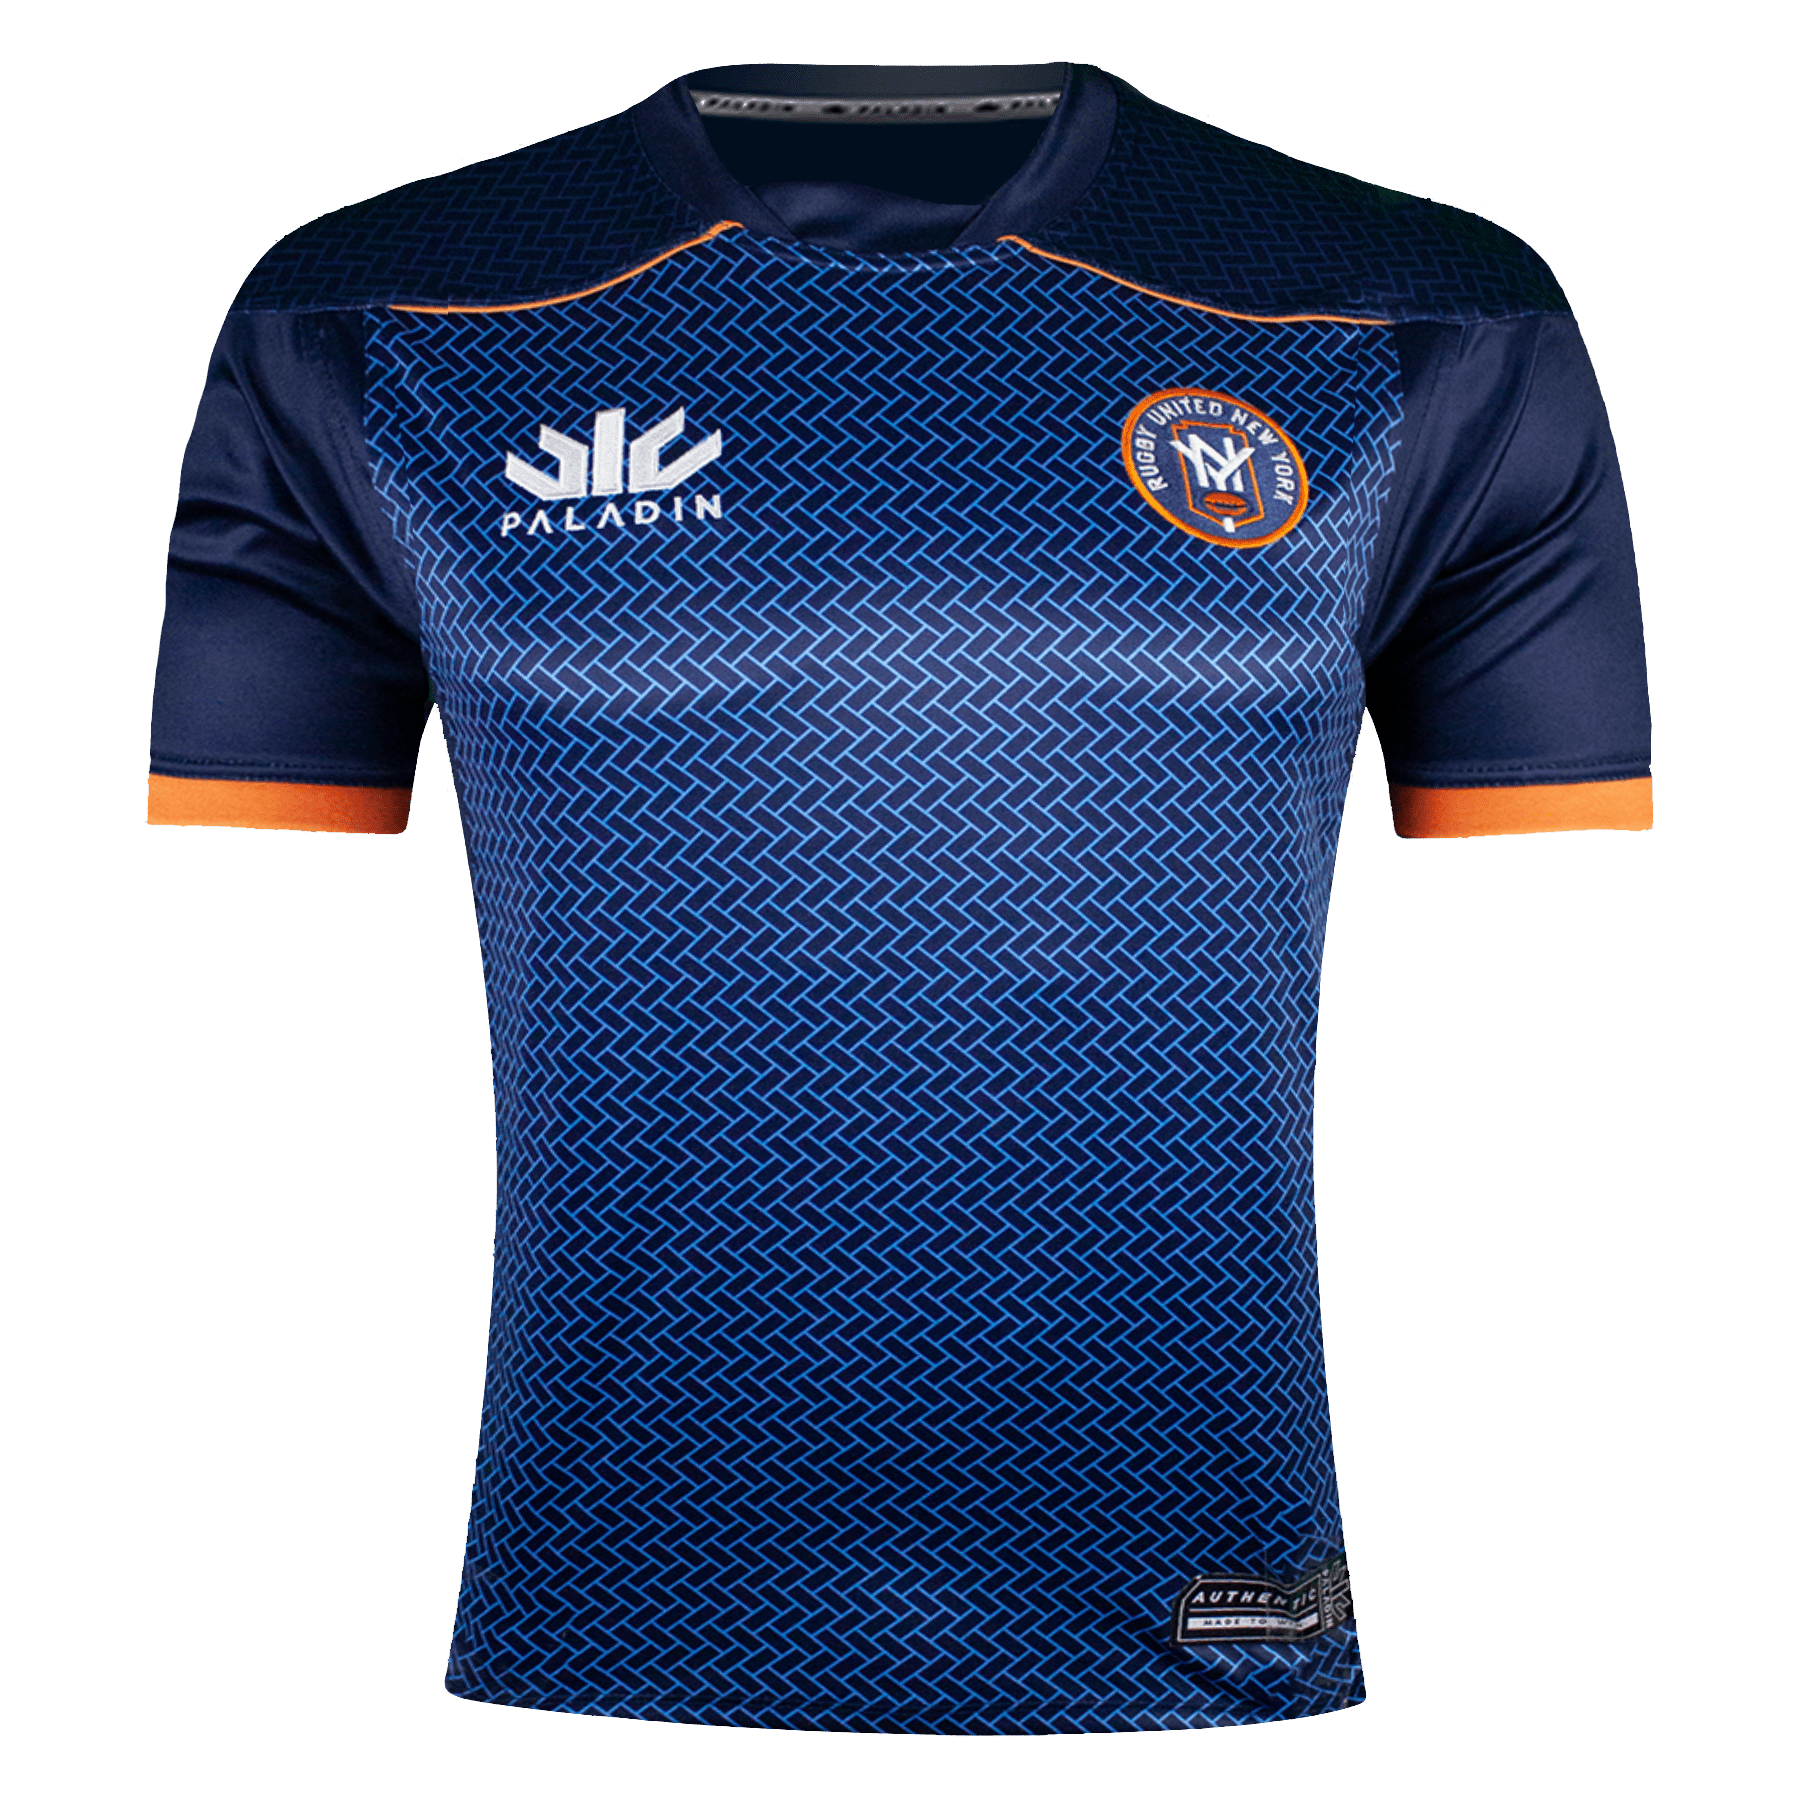 Paladin Rugby United New York 2021 Home Jersey